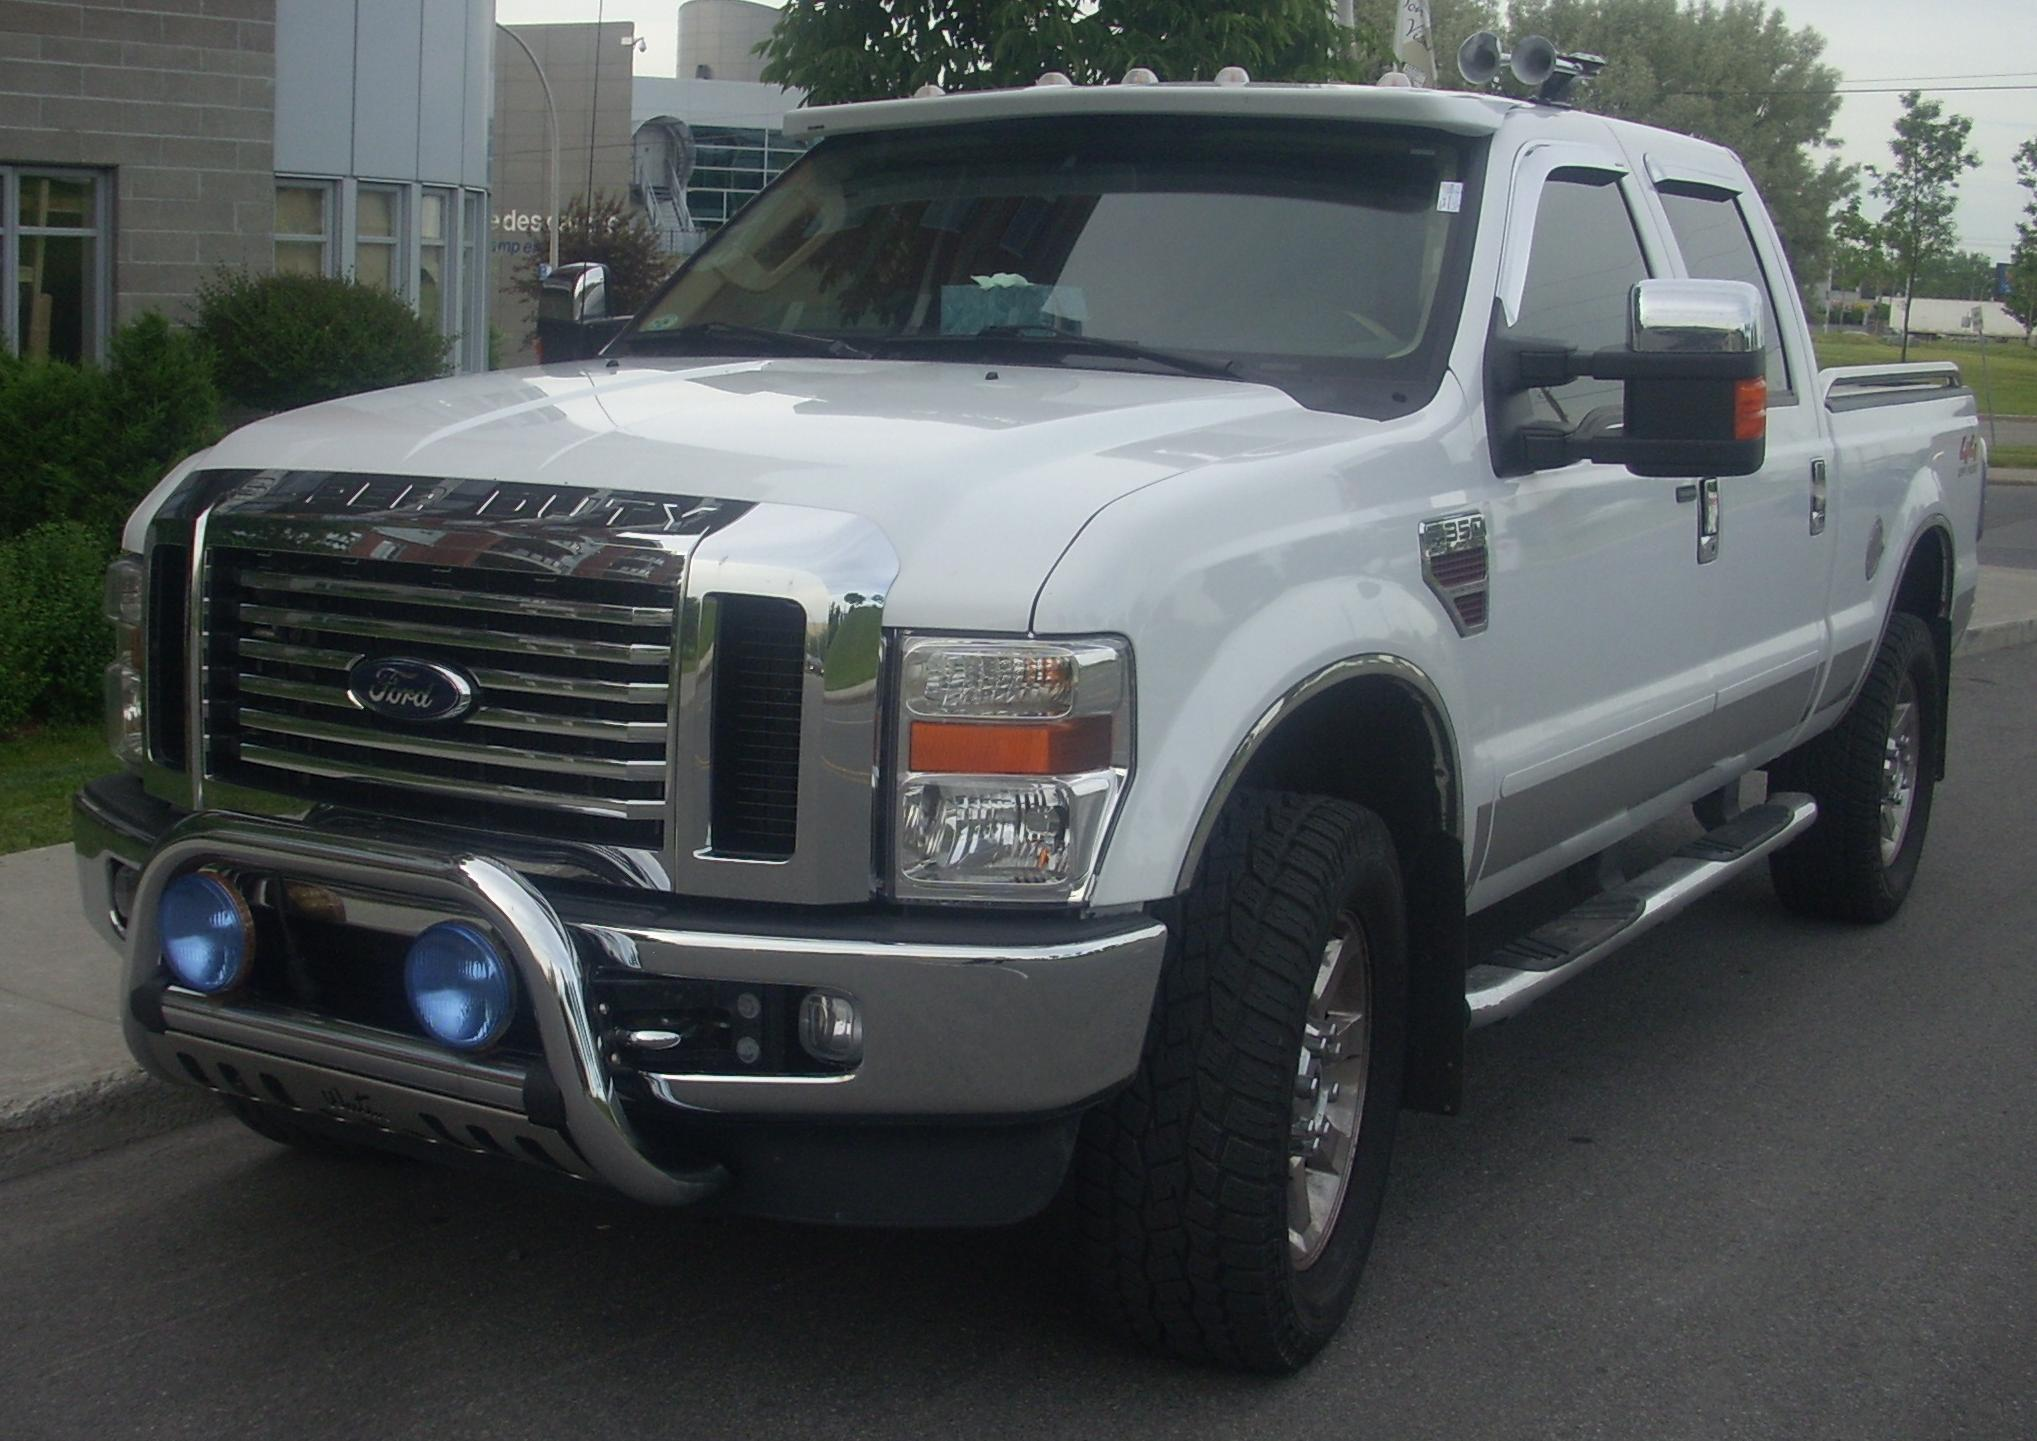 Ford F Super Duty Truck Bed For Sale